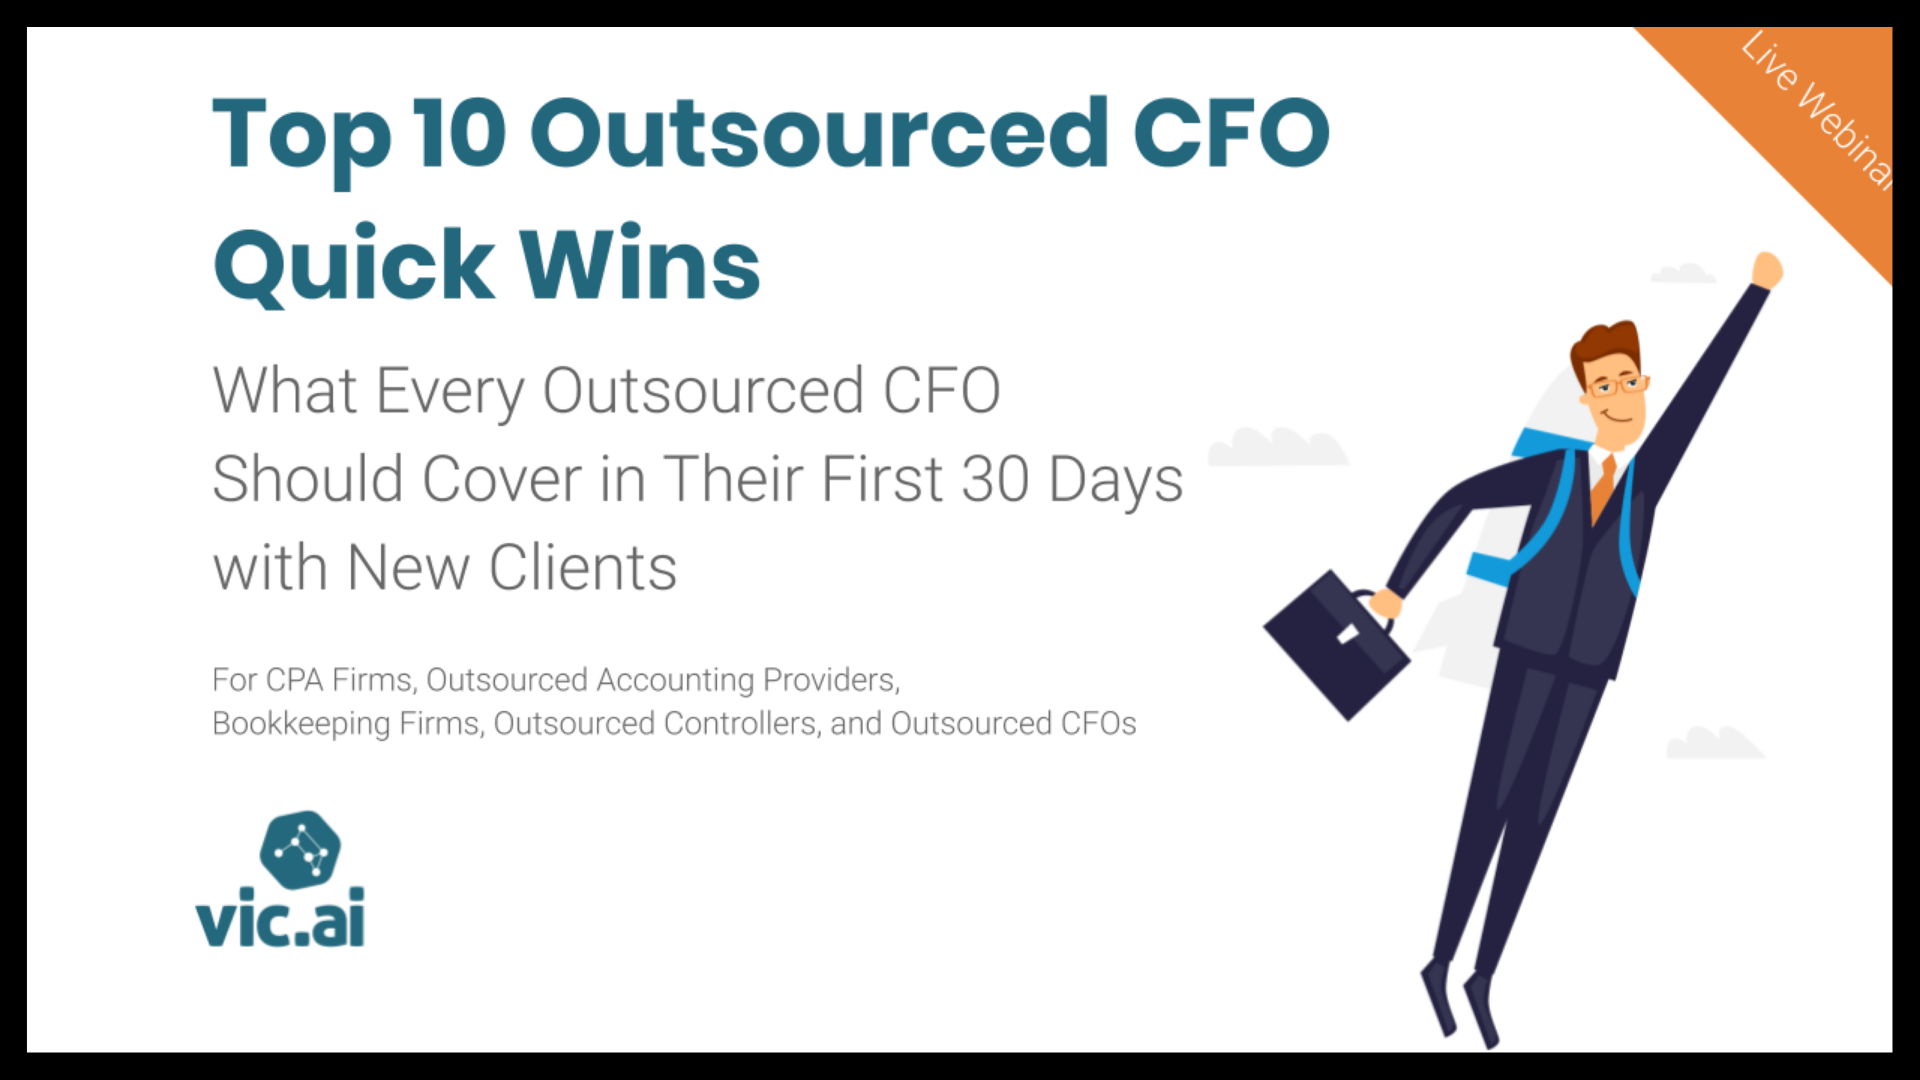 Top 10 Outsourced CFO Quick Wins (What Every Outsourced CFO Should Cover in Their First 30 Days with